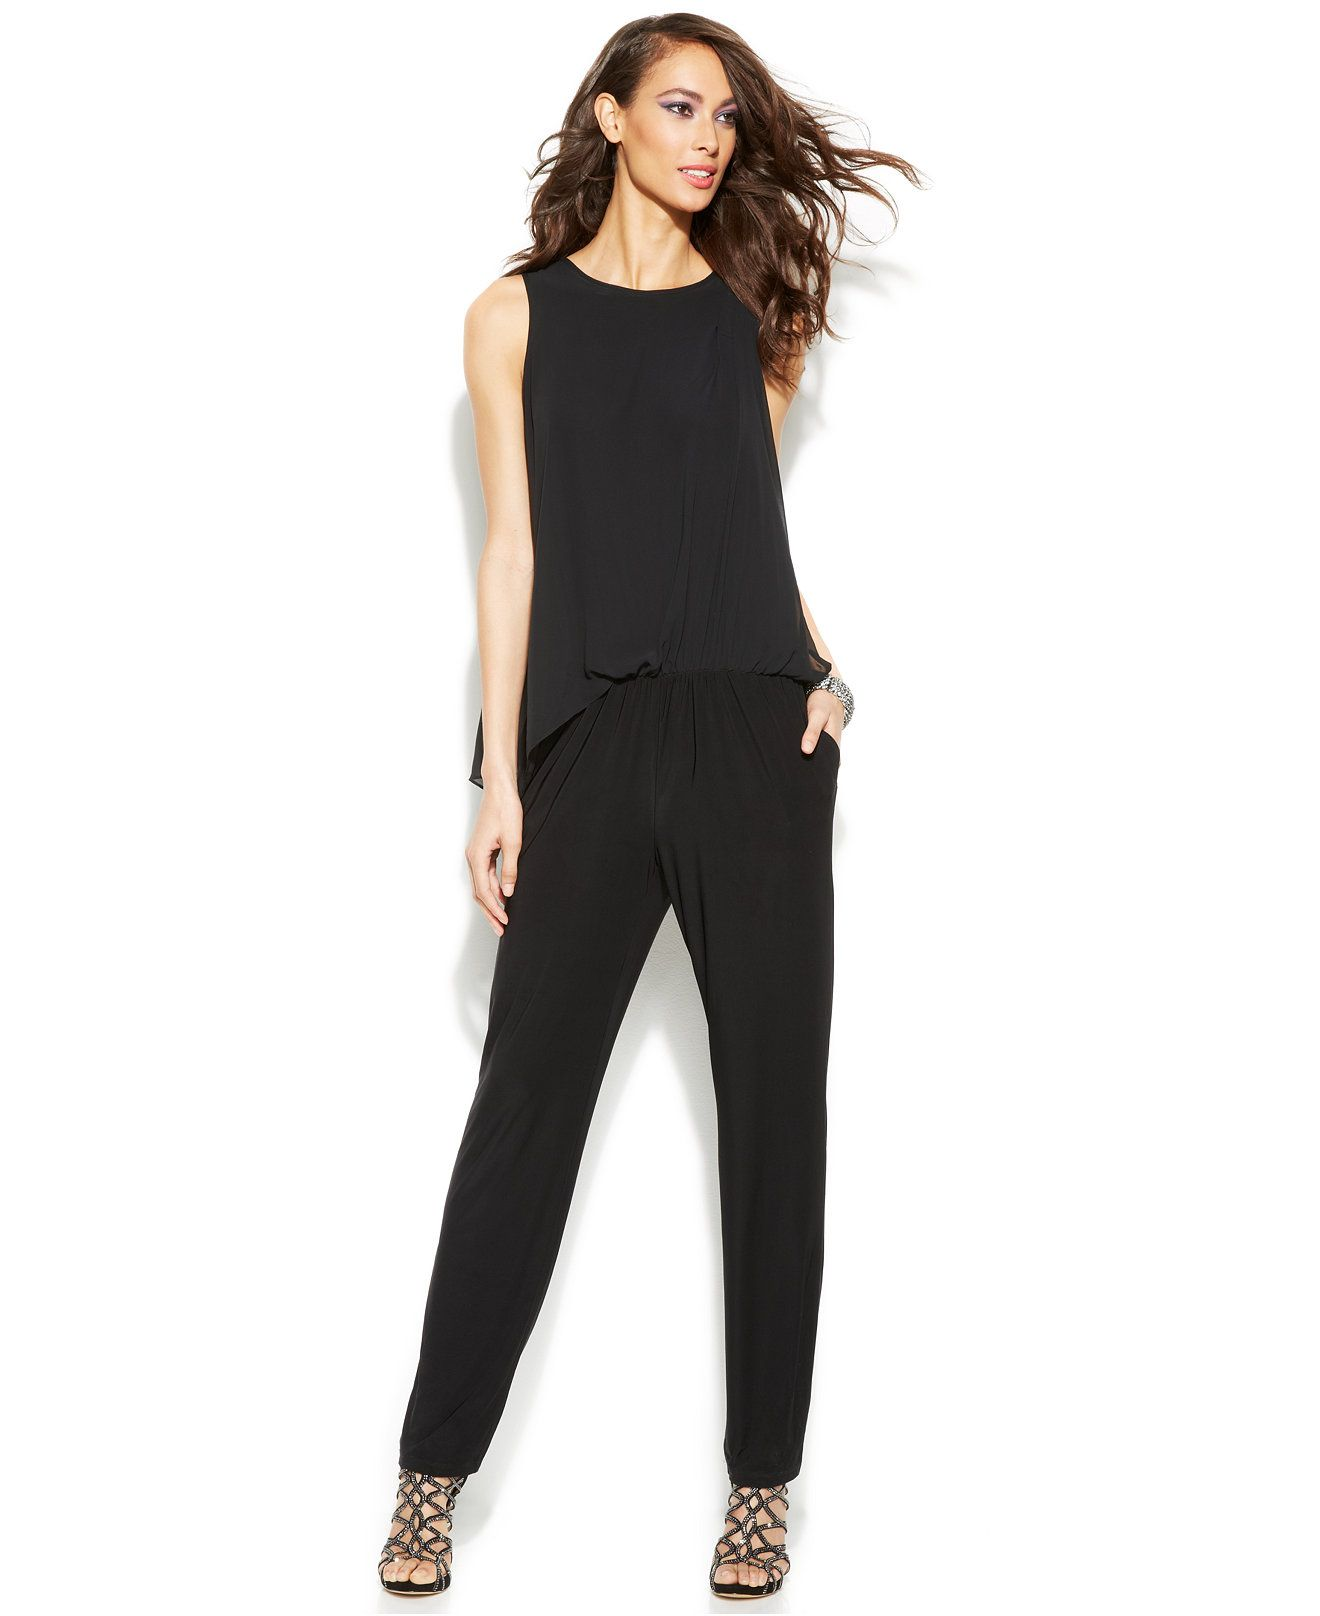 17fed6aabaa INC International Concepts Sleeveless Slim-Leg Jumpsuit - Jumpsuits &  Rompers - Women - Macy's